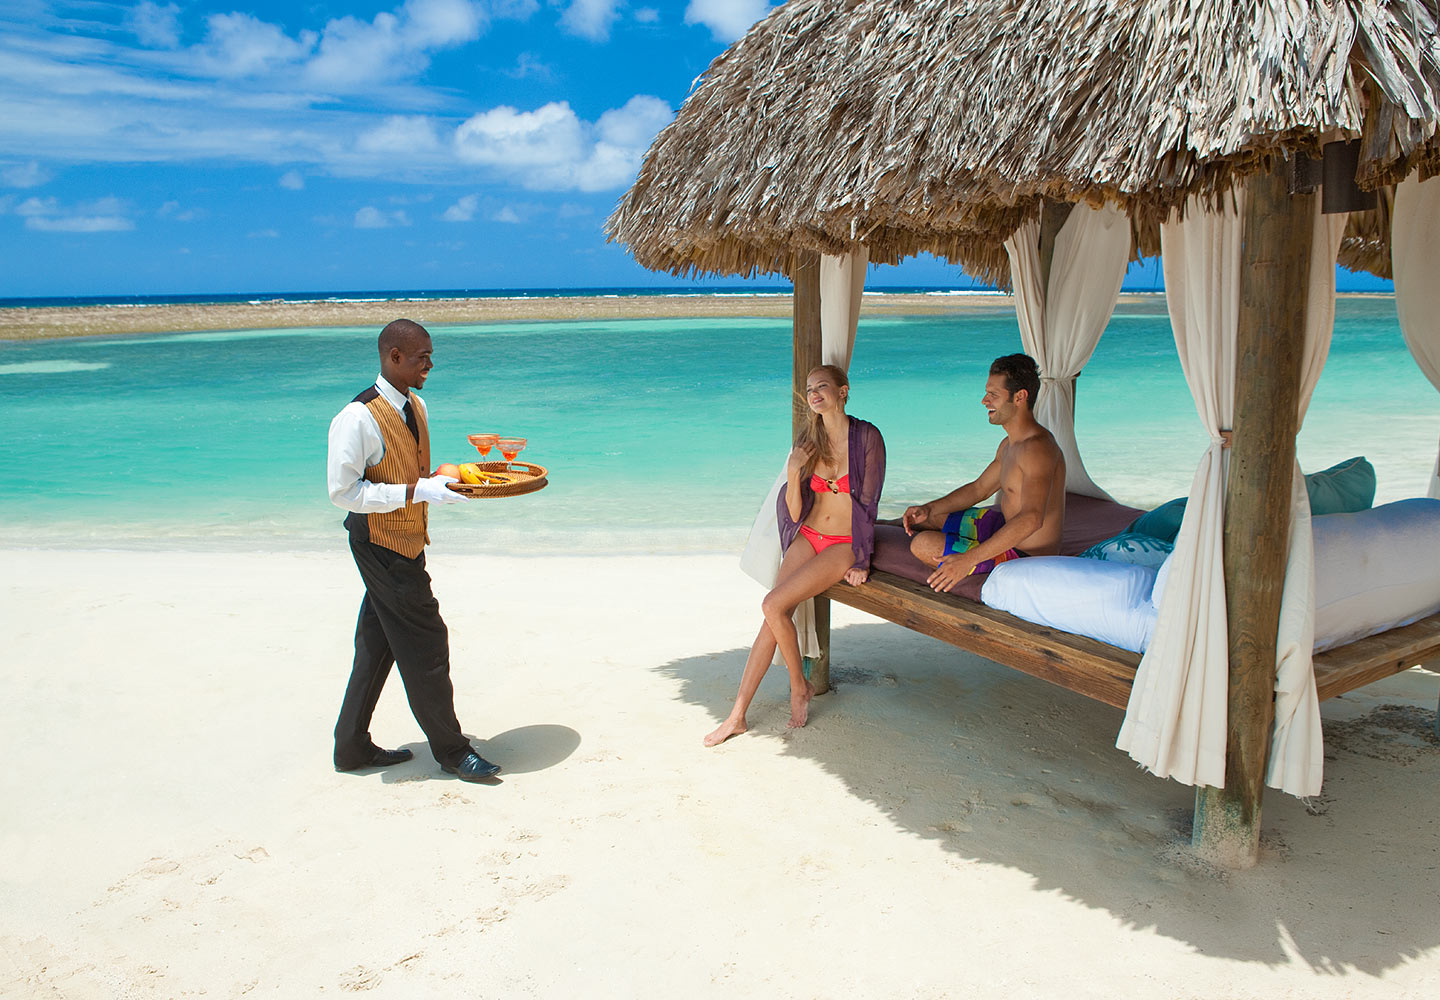 A valet delivering drinks to a cabana at Sandals Royal Caribbean, Jamaica